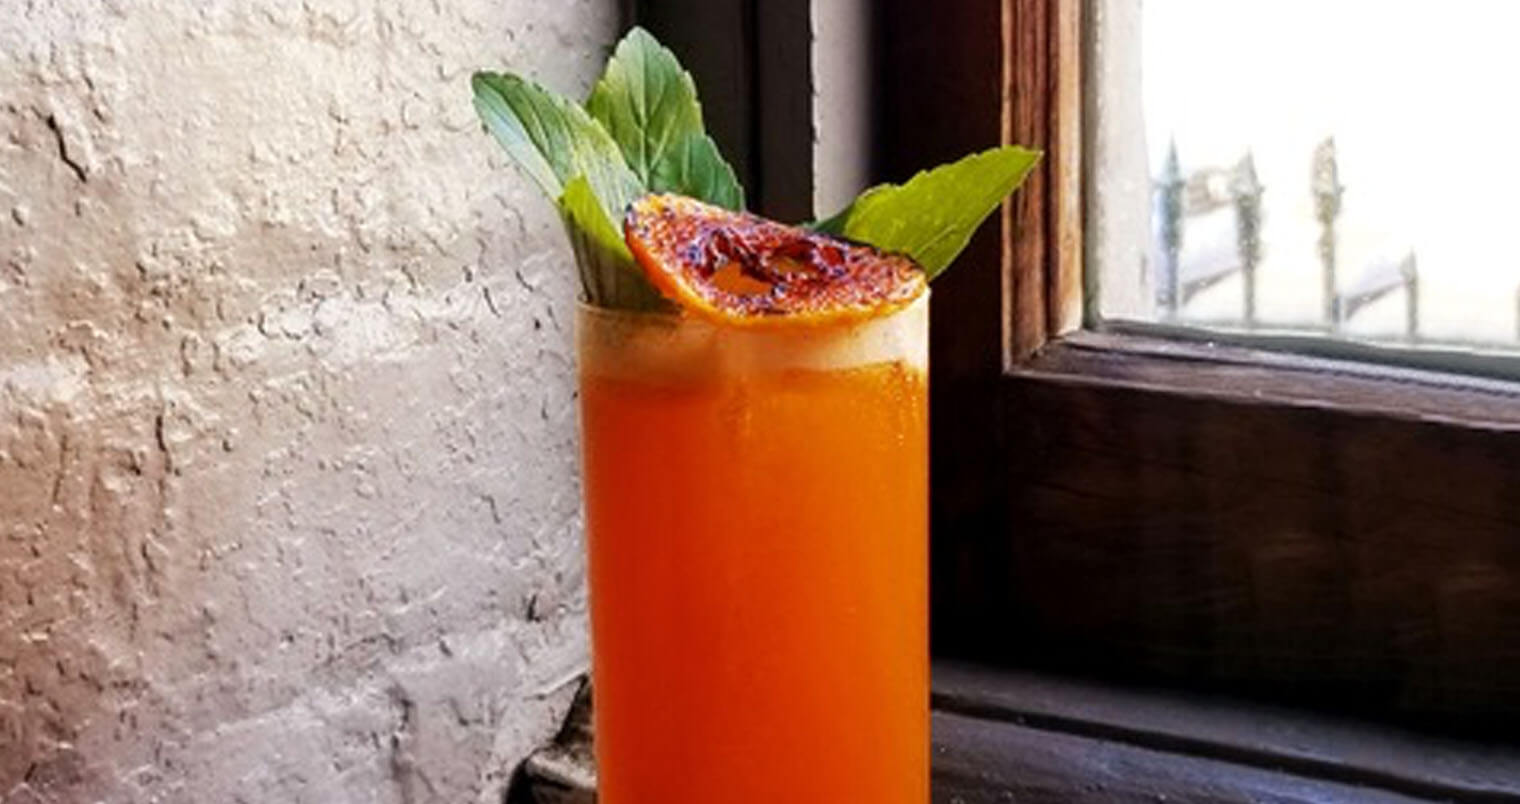 Butternut Squash Pimms, featured image